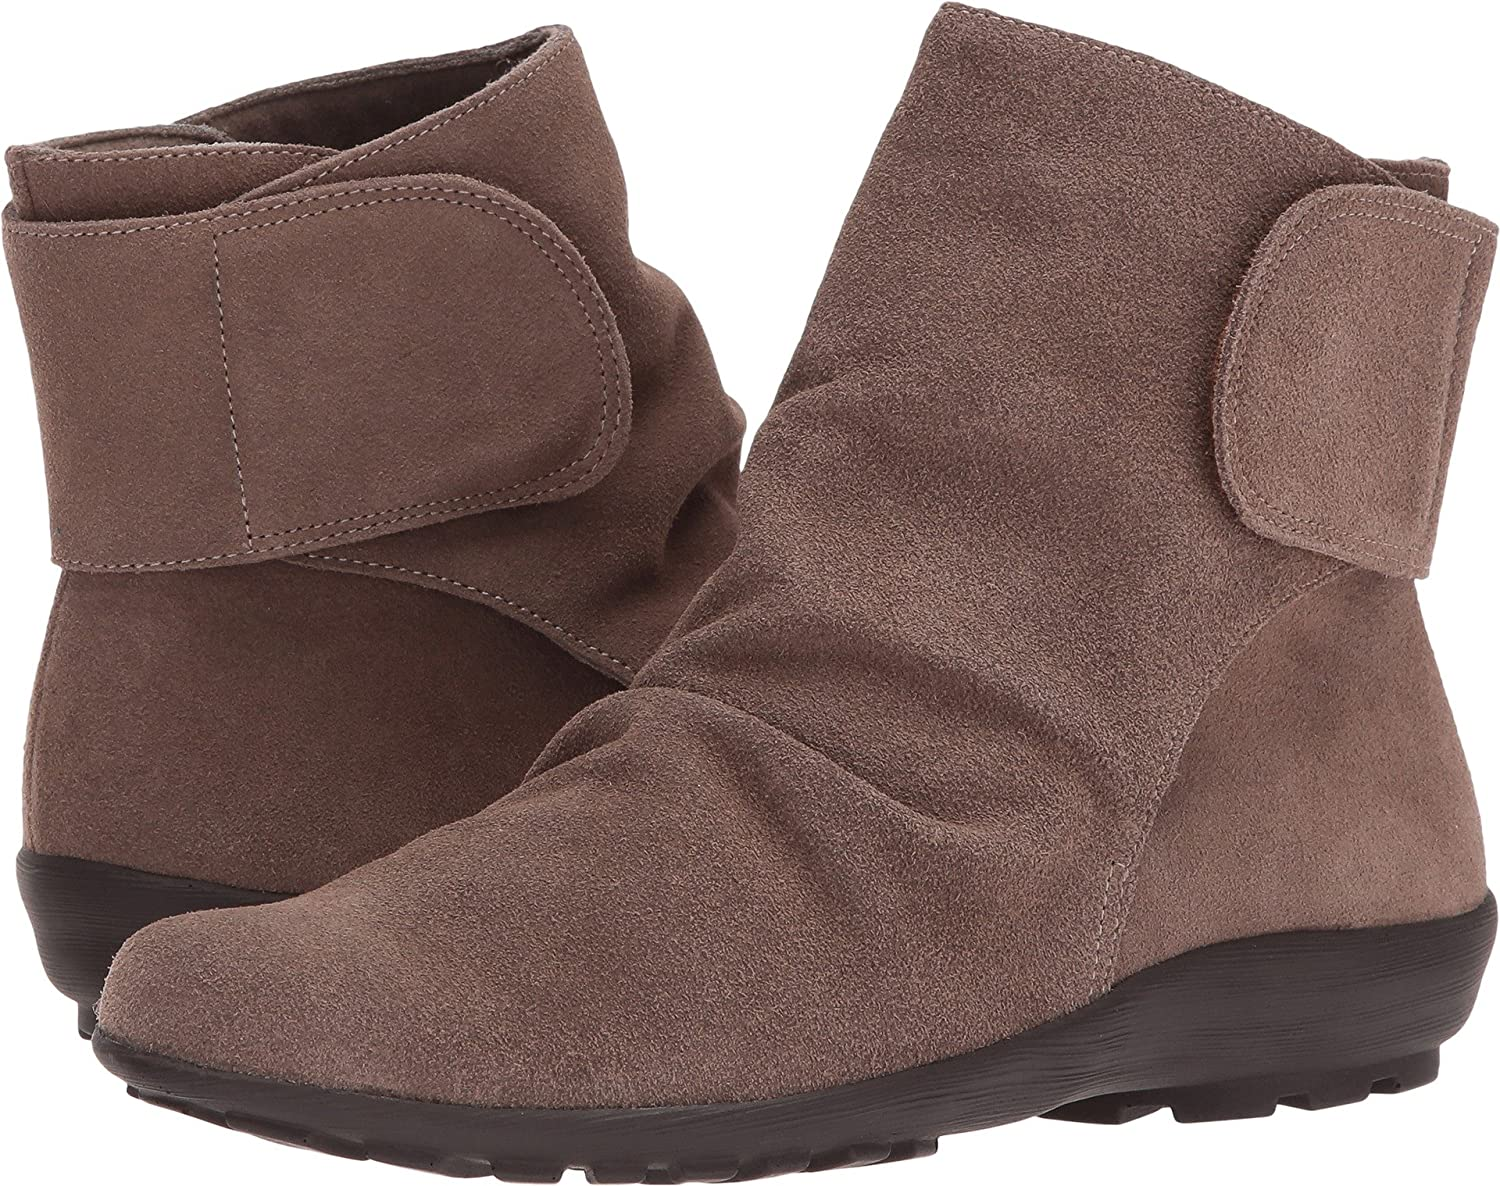 Walking Cradles Women's Harlow Ankle Boot B01N6UCE4S 6 B(M) US|Taupe Max Suede